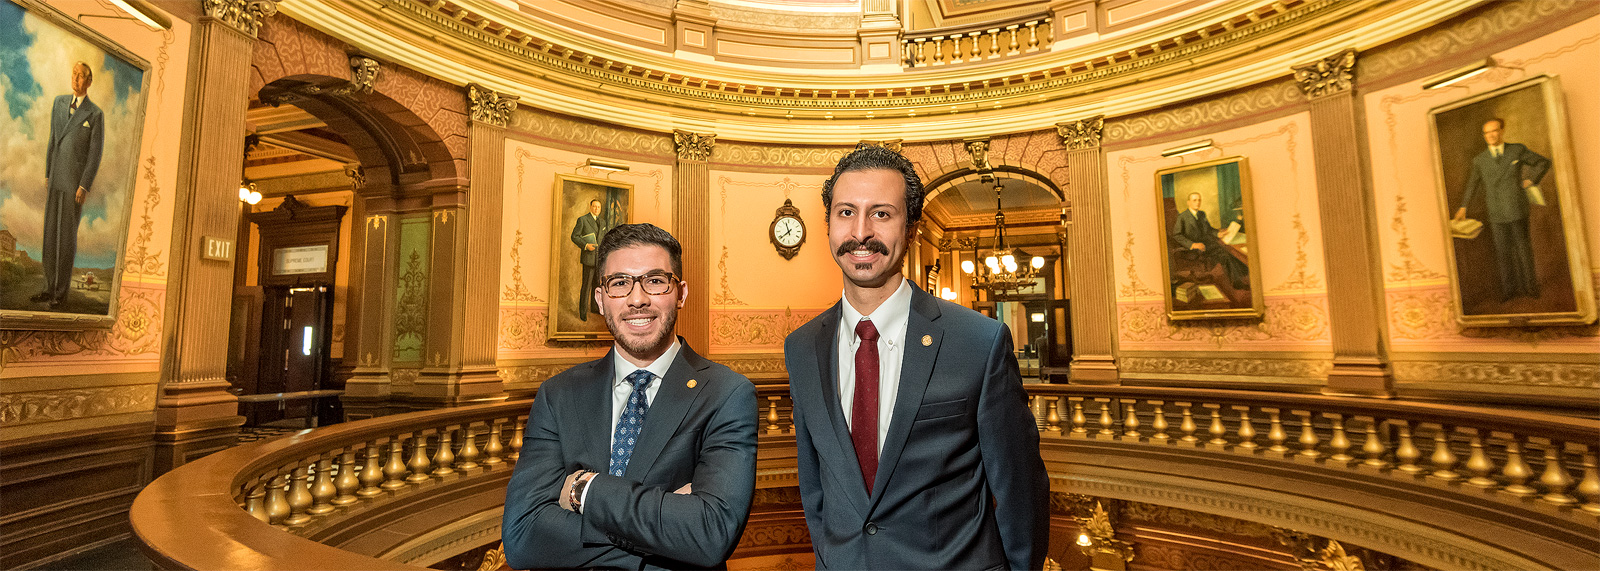 Abdullah Hammoud and Yousef Rabhi at the Michigan State Capitol